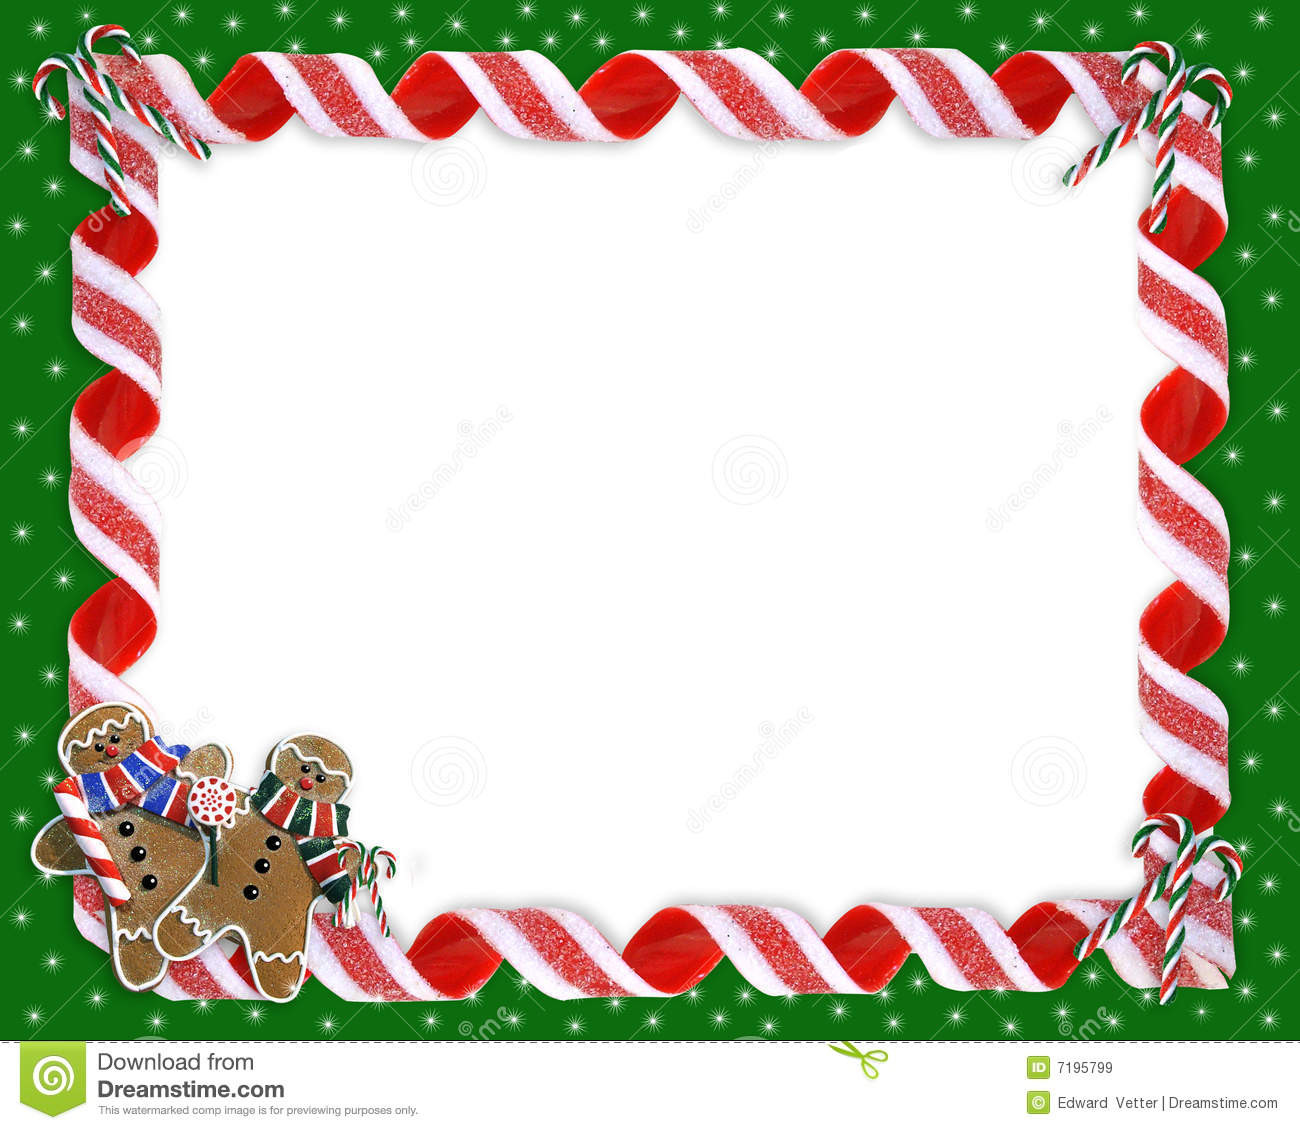 Christmas Candy Border  Christmas Border Cookies And Candy Royalty Free Stock